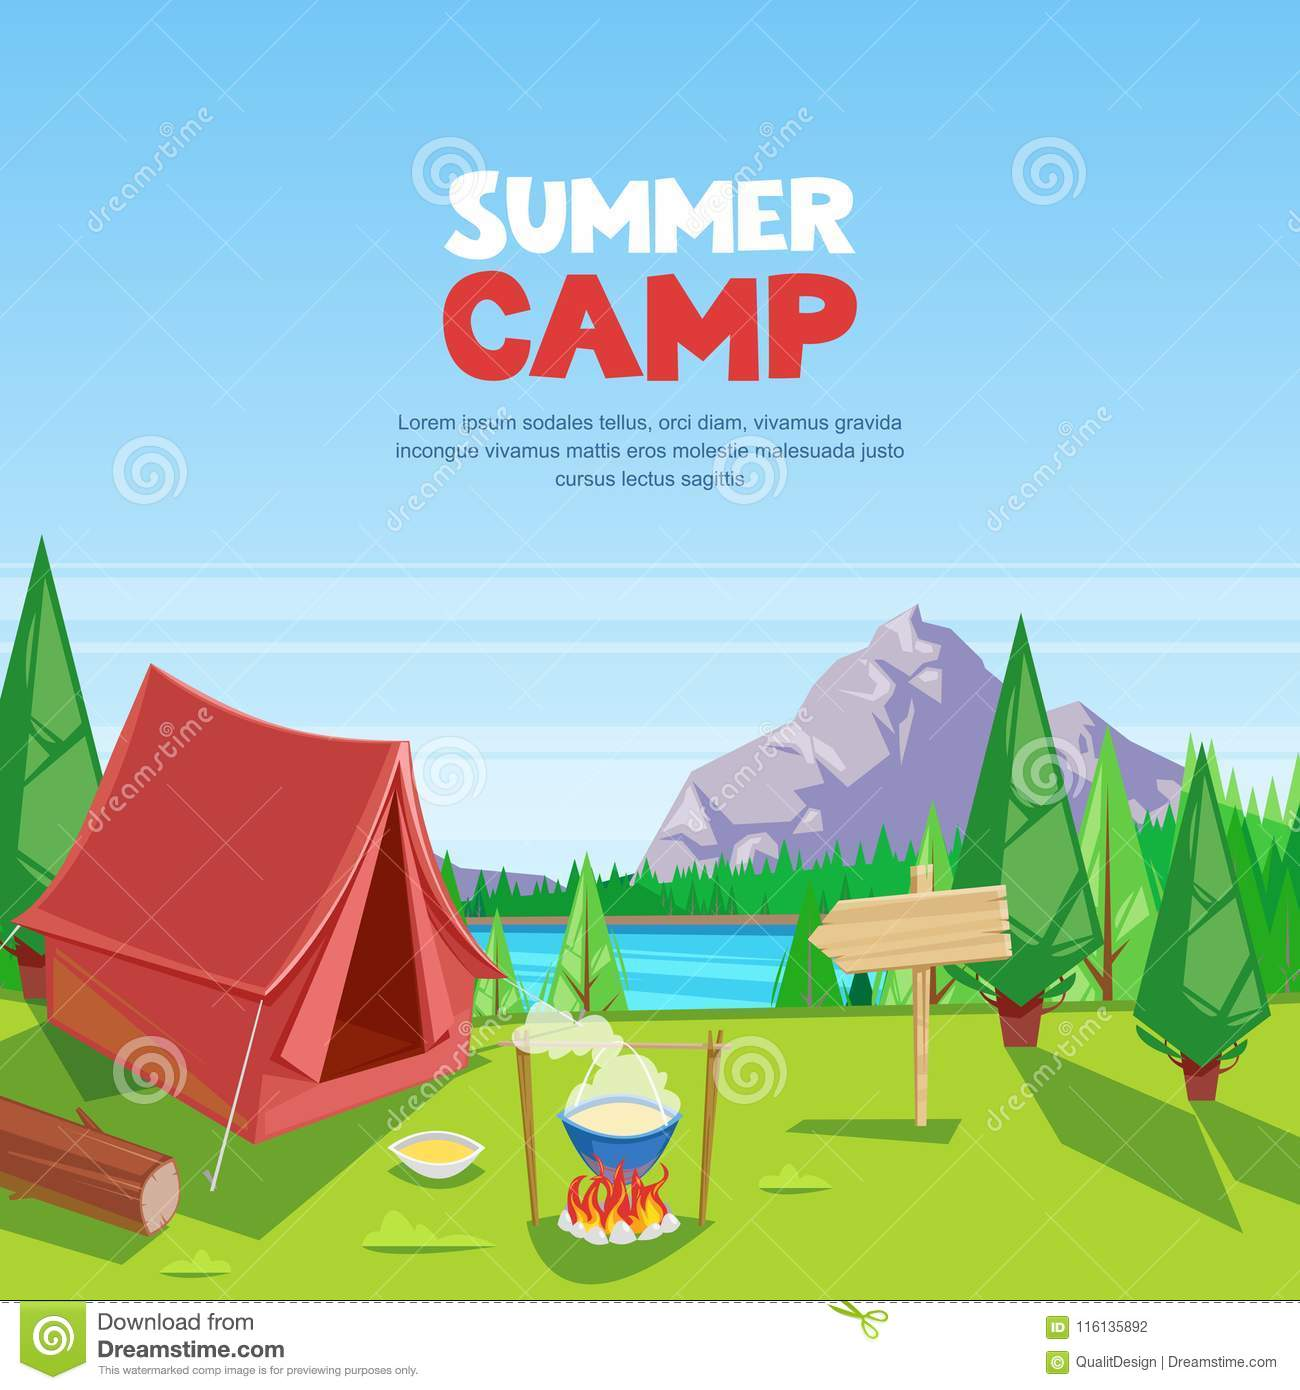 Summer camping vector cartoon illustration. Adventures, travel and eco tourism concept. Touristic camp tent on meadow.